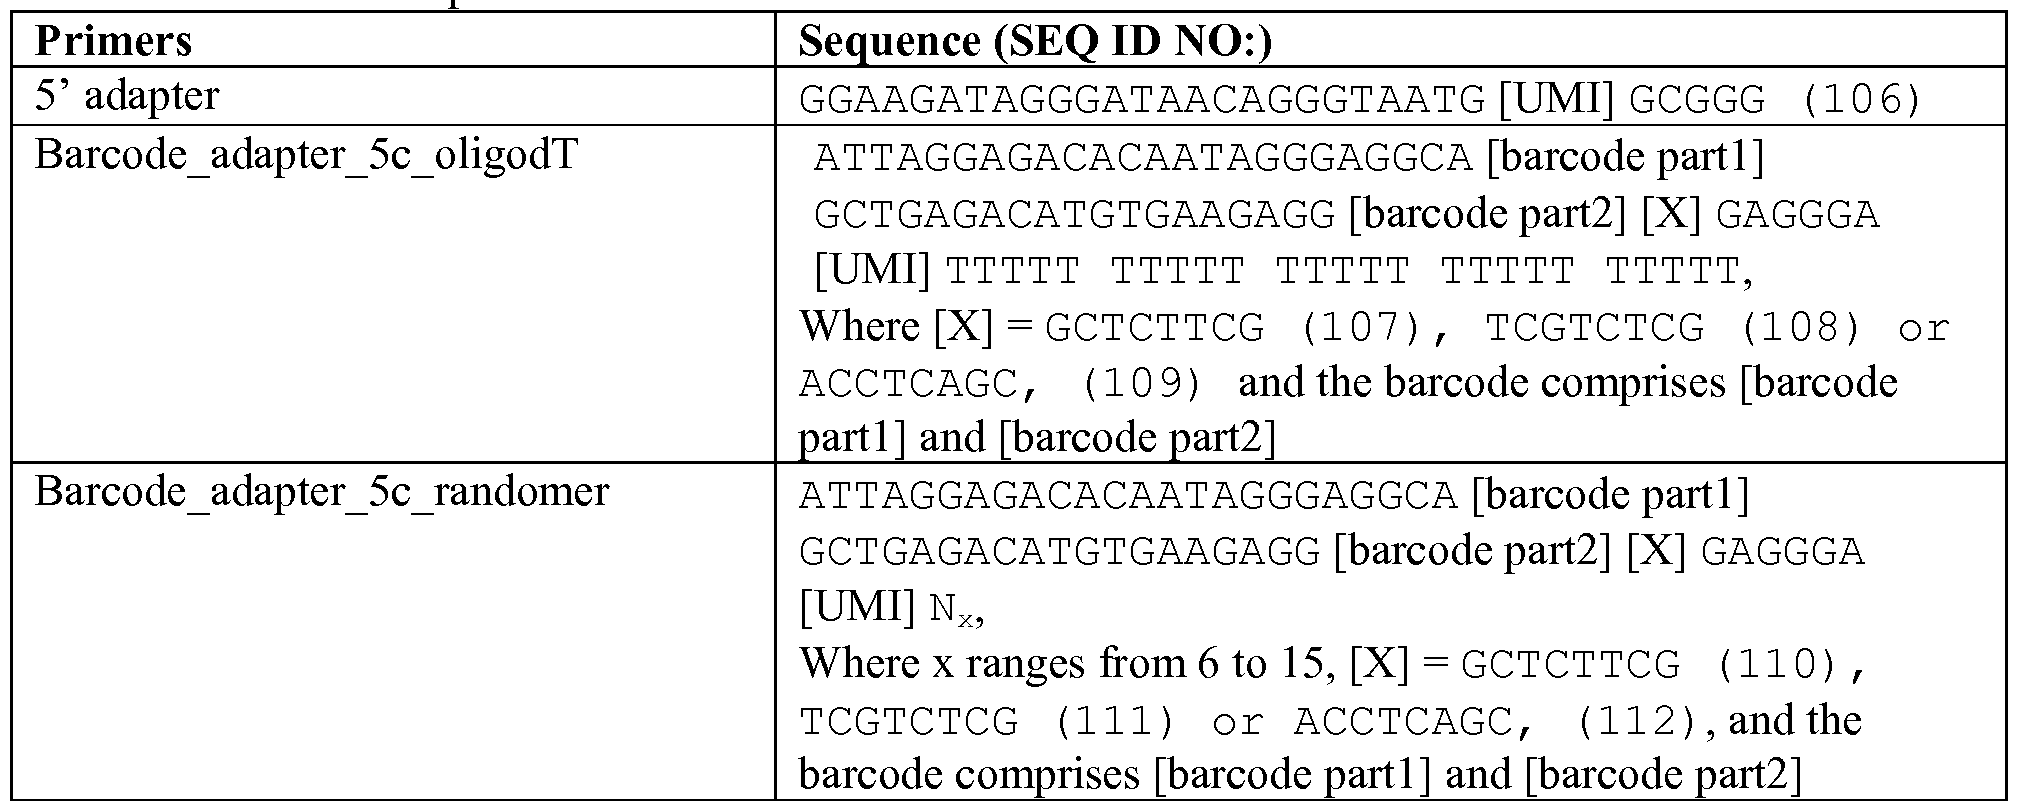 WO2015103339A1 - Analysis of nucleic acids associated with